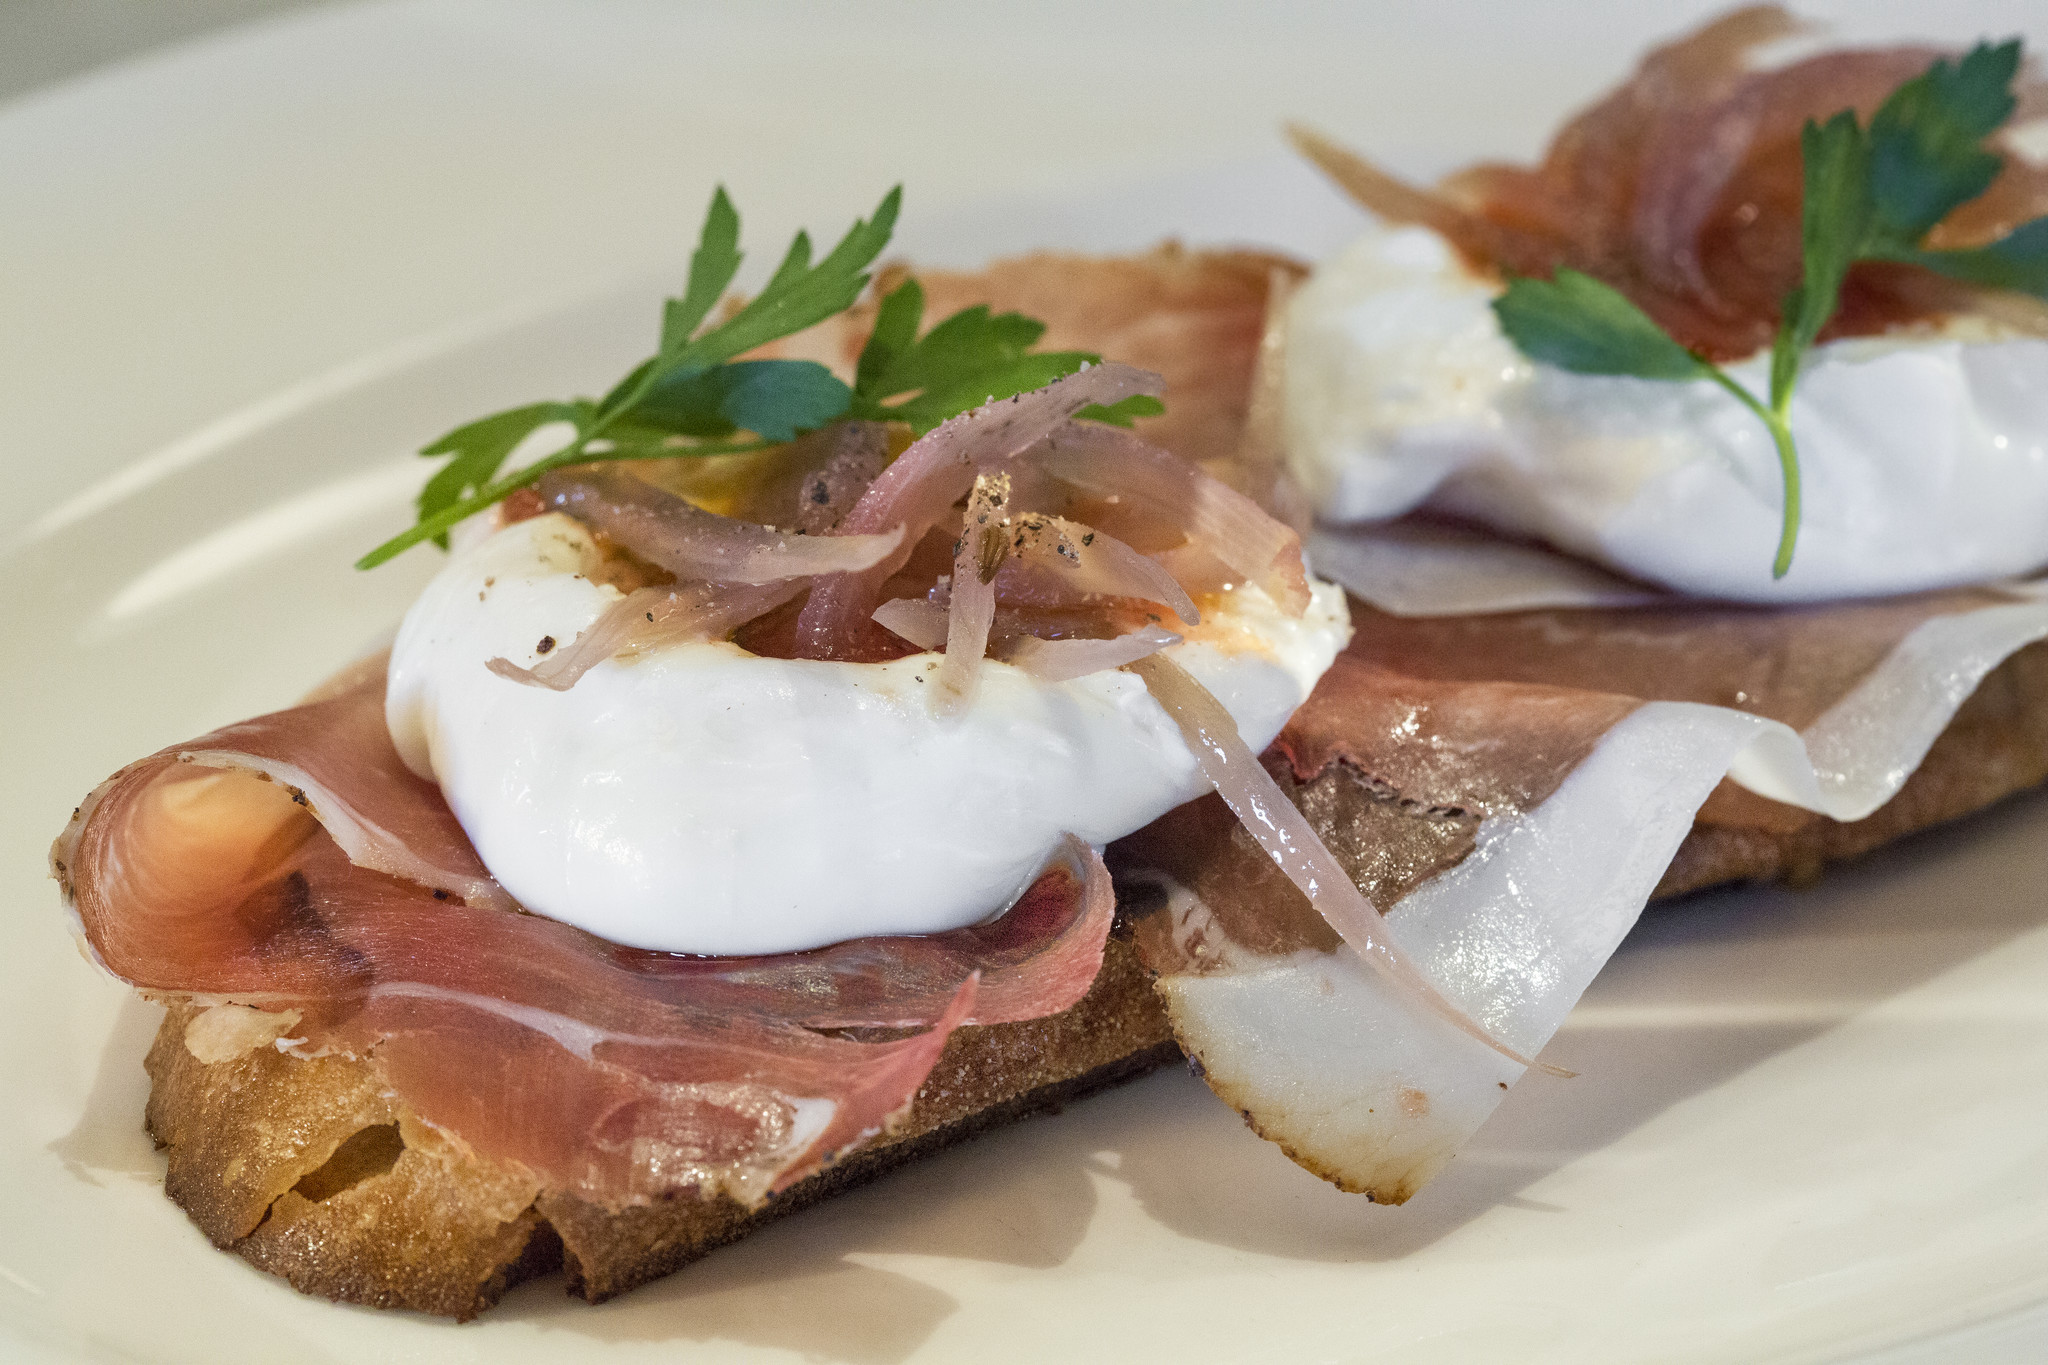 <p>LOS ANGELES, CA - SEPTEMBER 15, 2016 - Burrata & Pane al Comodoro - Early Girl tomatoes, speck & pickled shallots served at Osteria Mozza, September 15, 2016. (Ricardo DeAratanha/Los Angeles Times).</p>